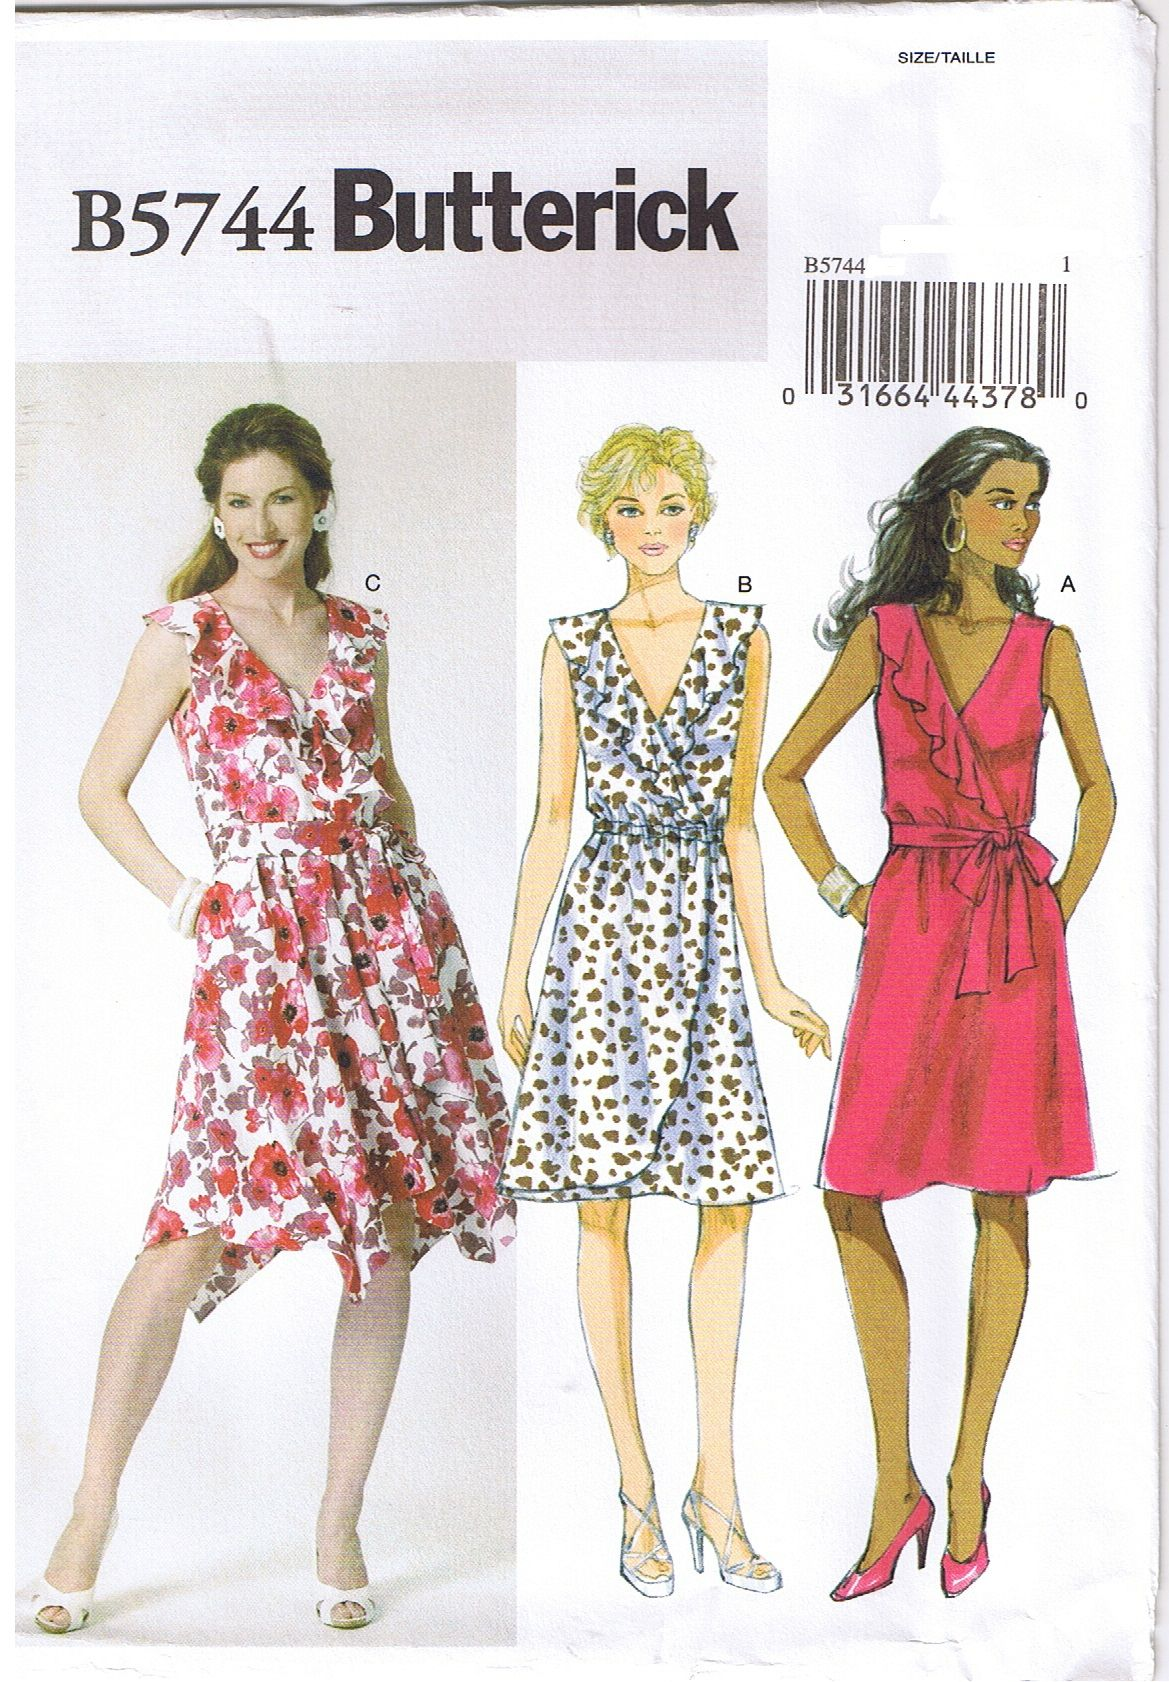 Perfect Summer 2017 Dress. Butterick 5744 Sewing pattern available ...